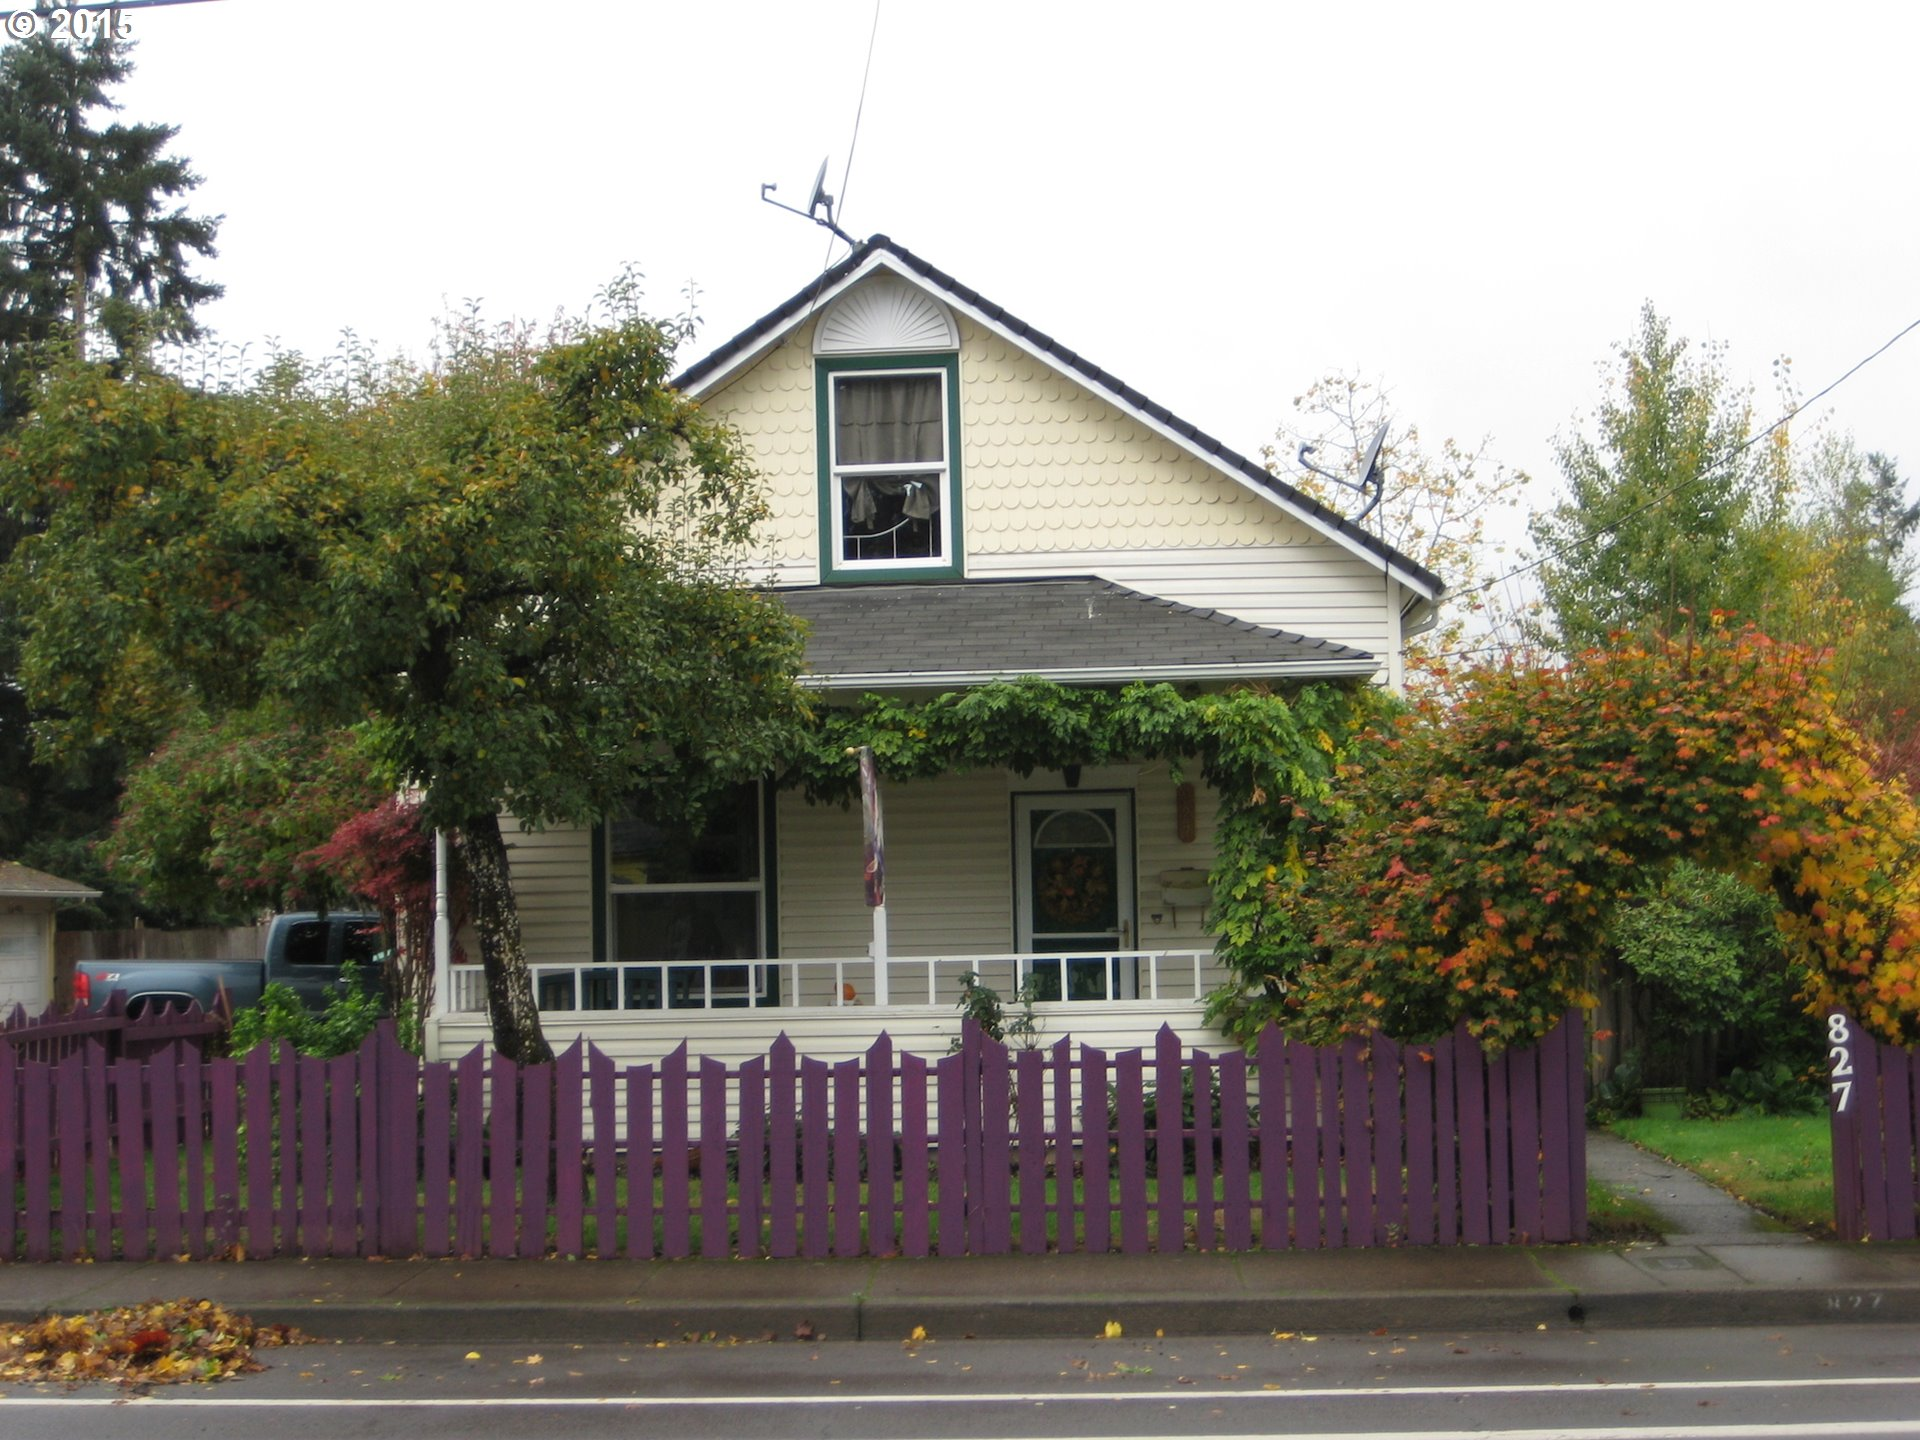 827 S 6th St, Cottage Grove, OR